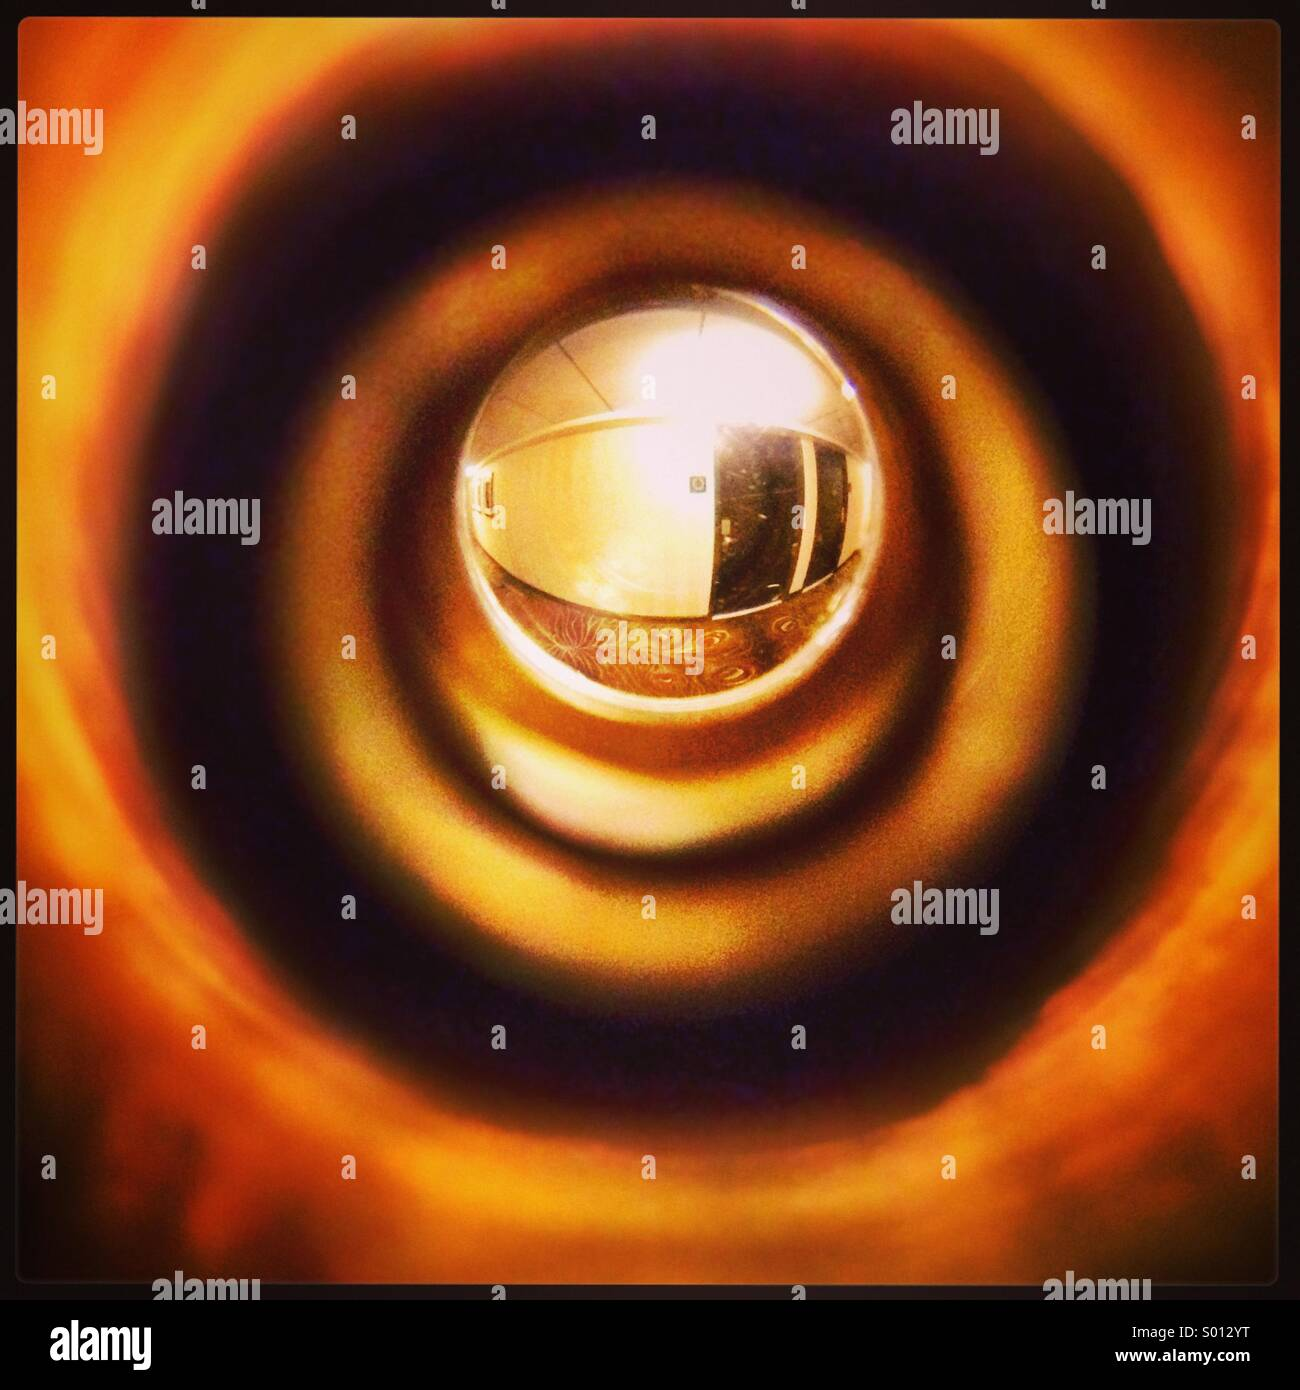 A peephole view of a hotel hallway - Stock Image